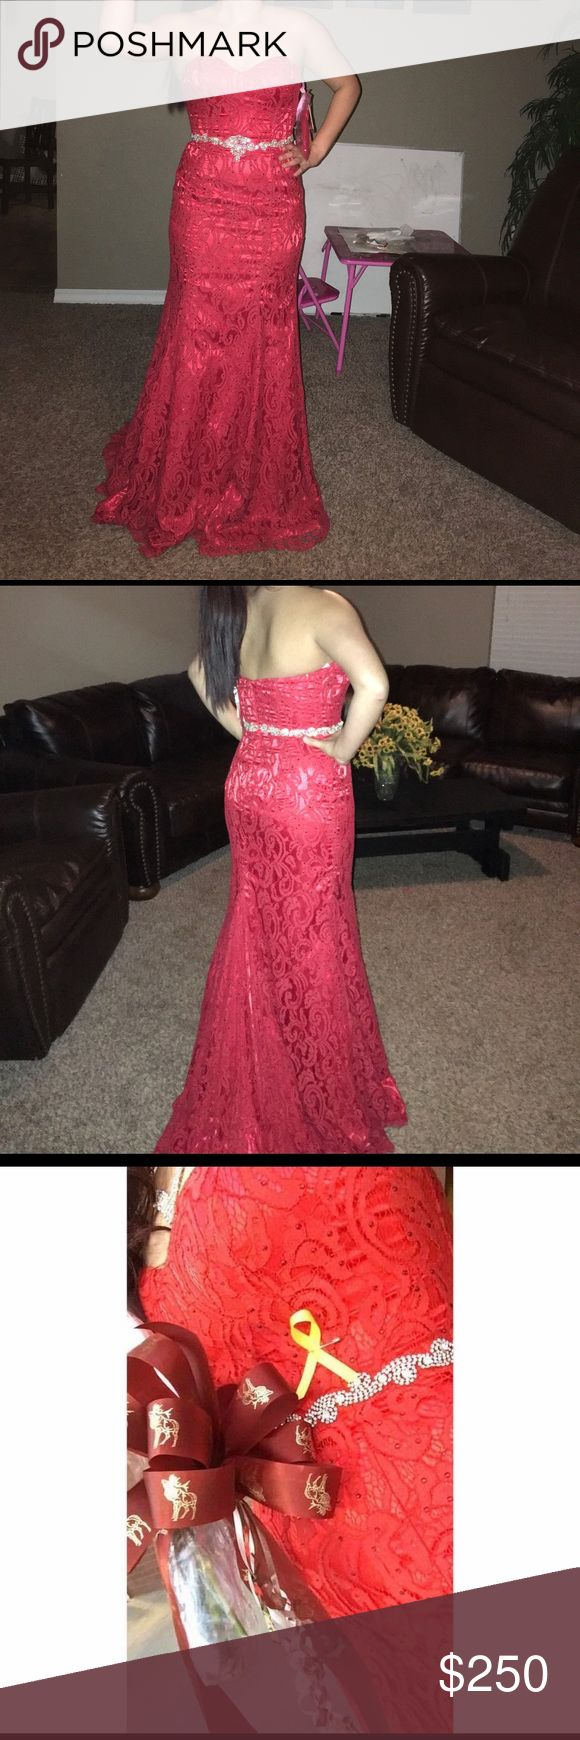 Size 8 Blush (brand) Prom dress Only worn once for maybe 20 minutes to walk Acers the football field for the homecoming ceremony I paid $425 Blush Dresses Prom